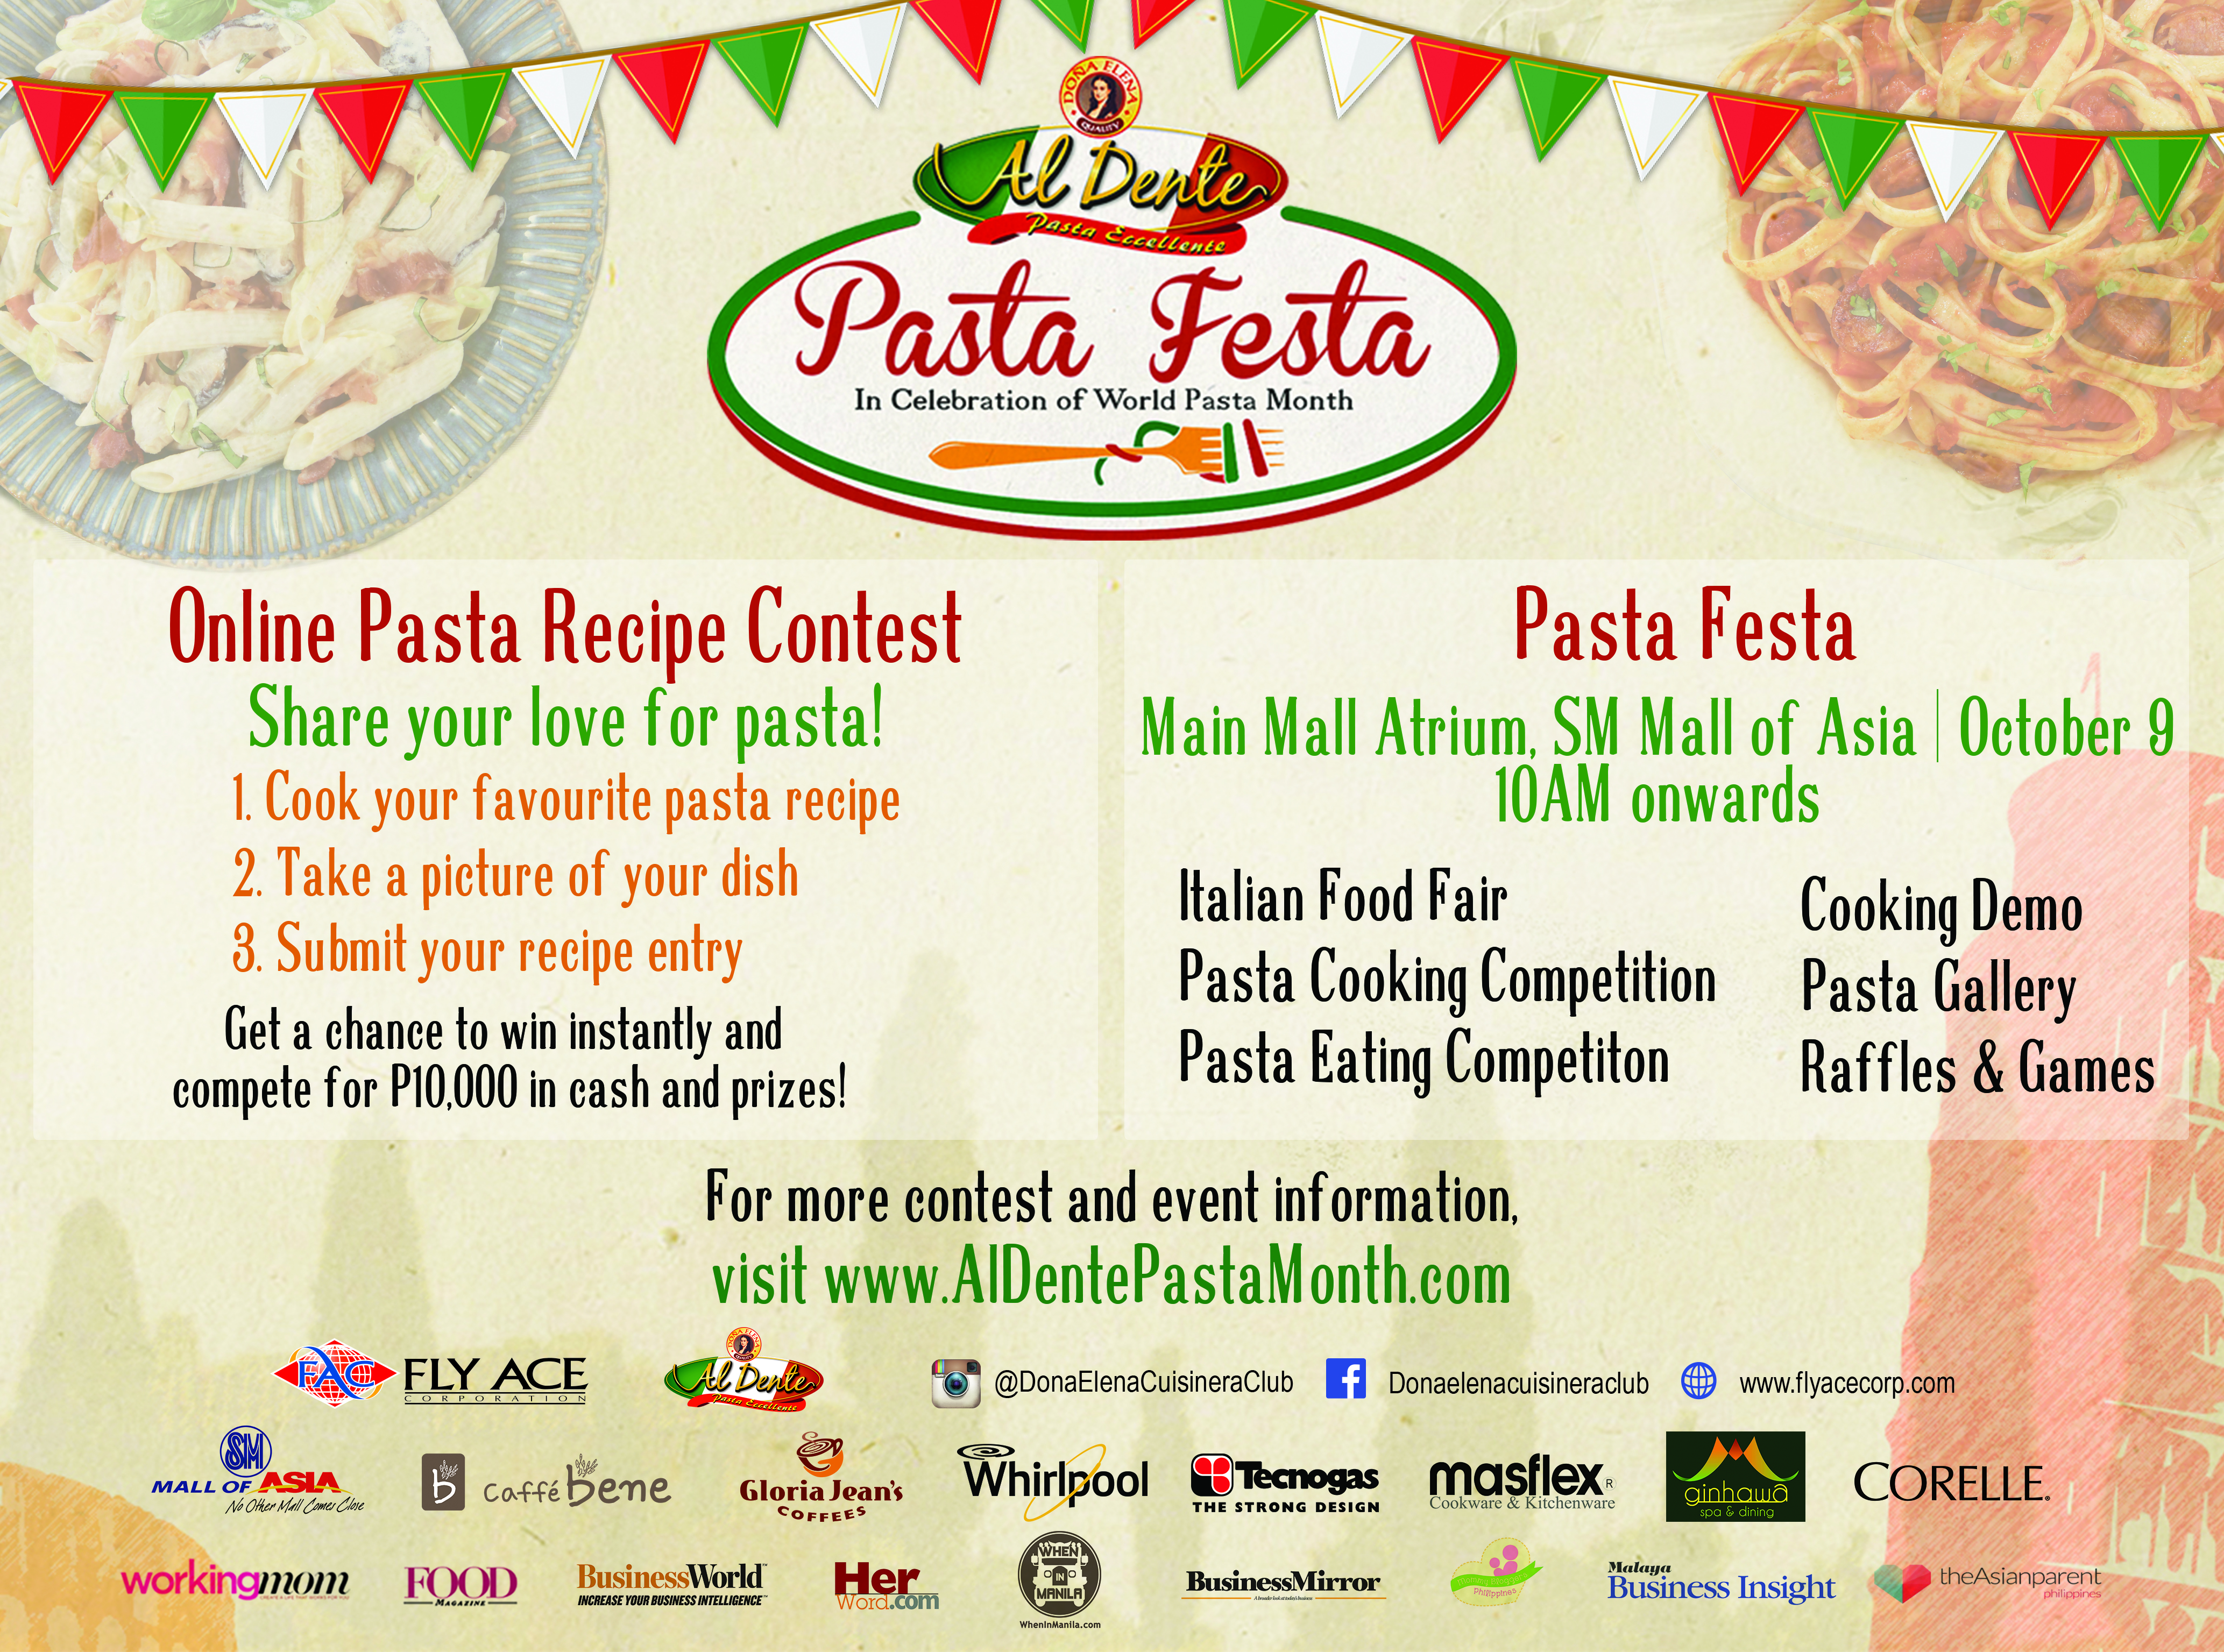 Come join us this October 9 as we celebrate the World Pasta Month and say... It's Al Dente! Join our online contest and pre-register for the event, visit www.aldentepastamonth.com.